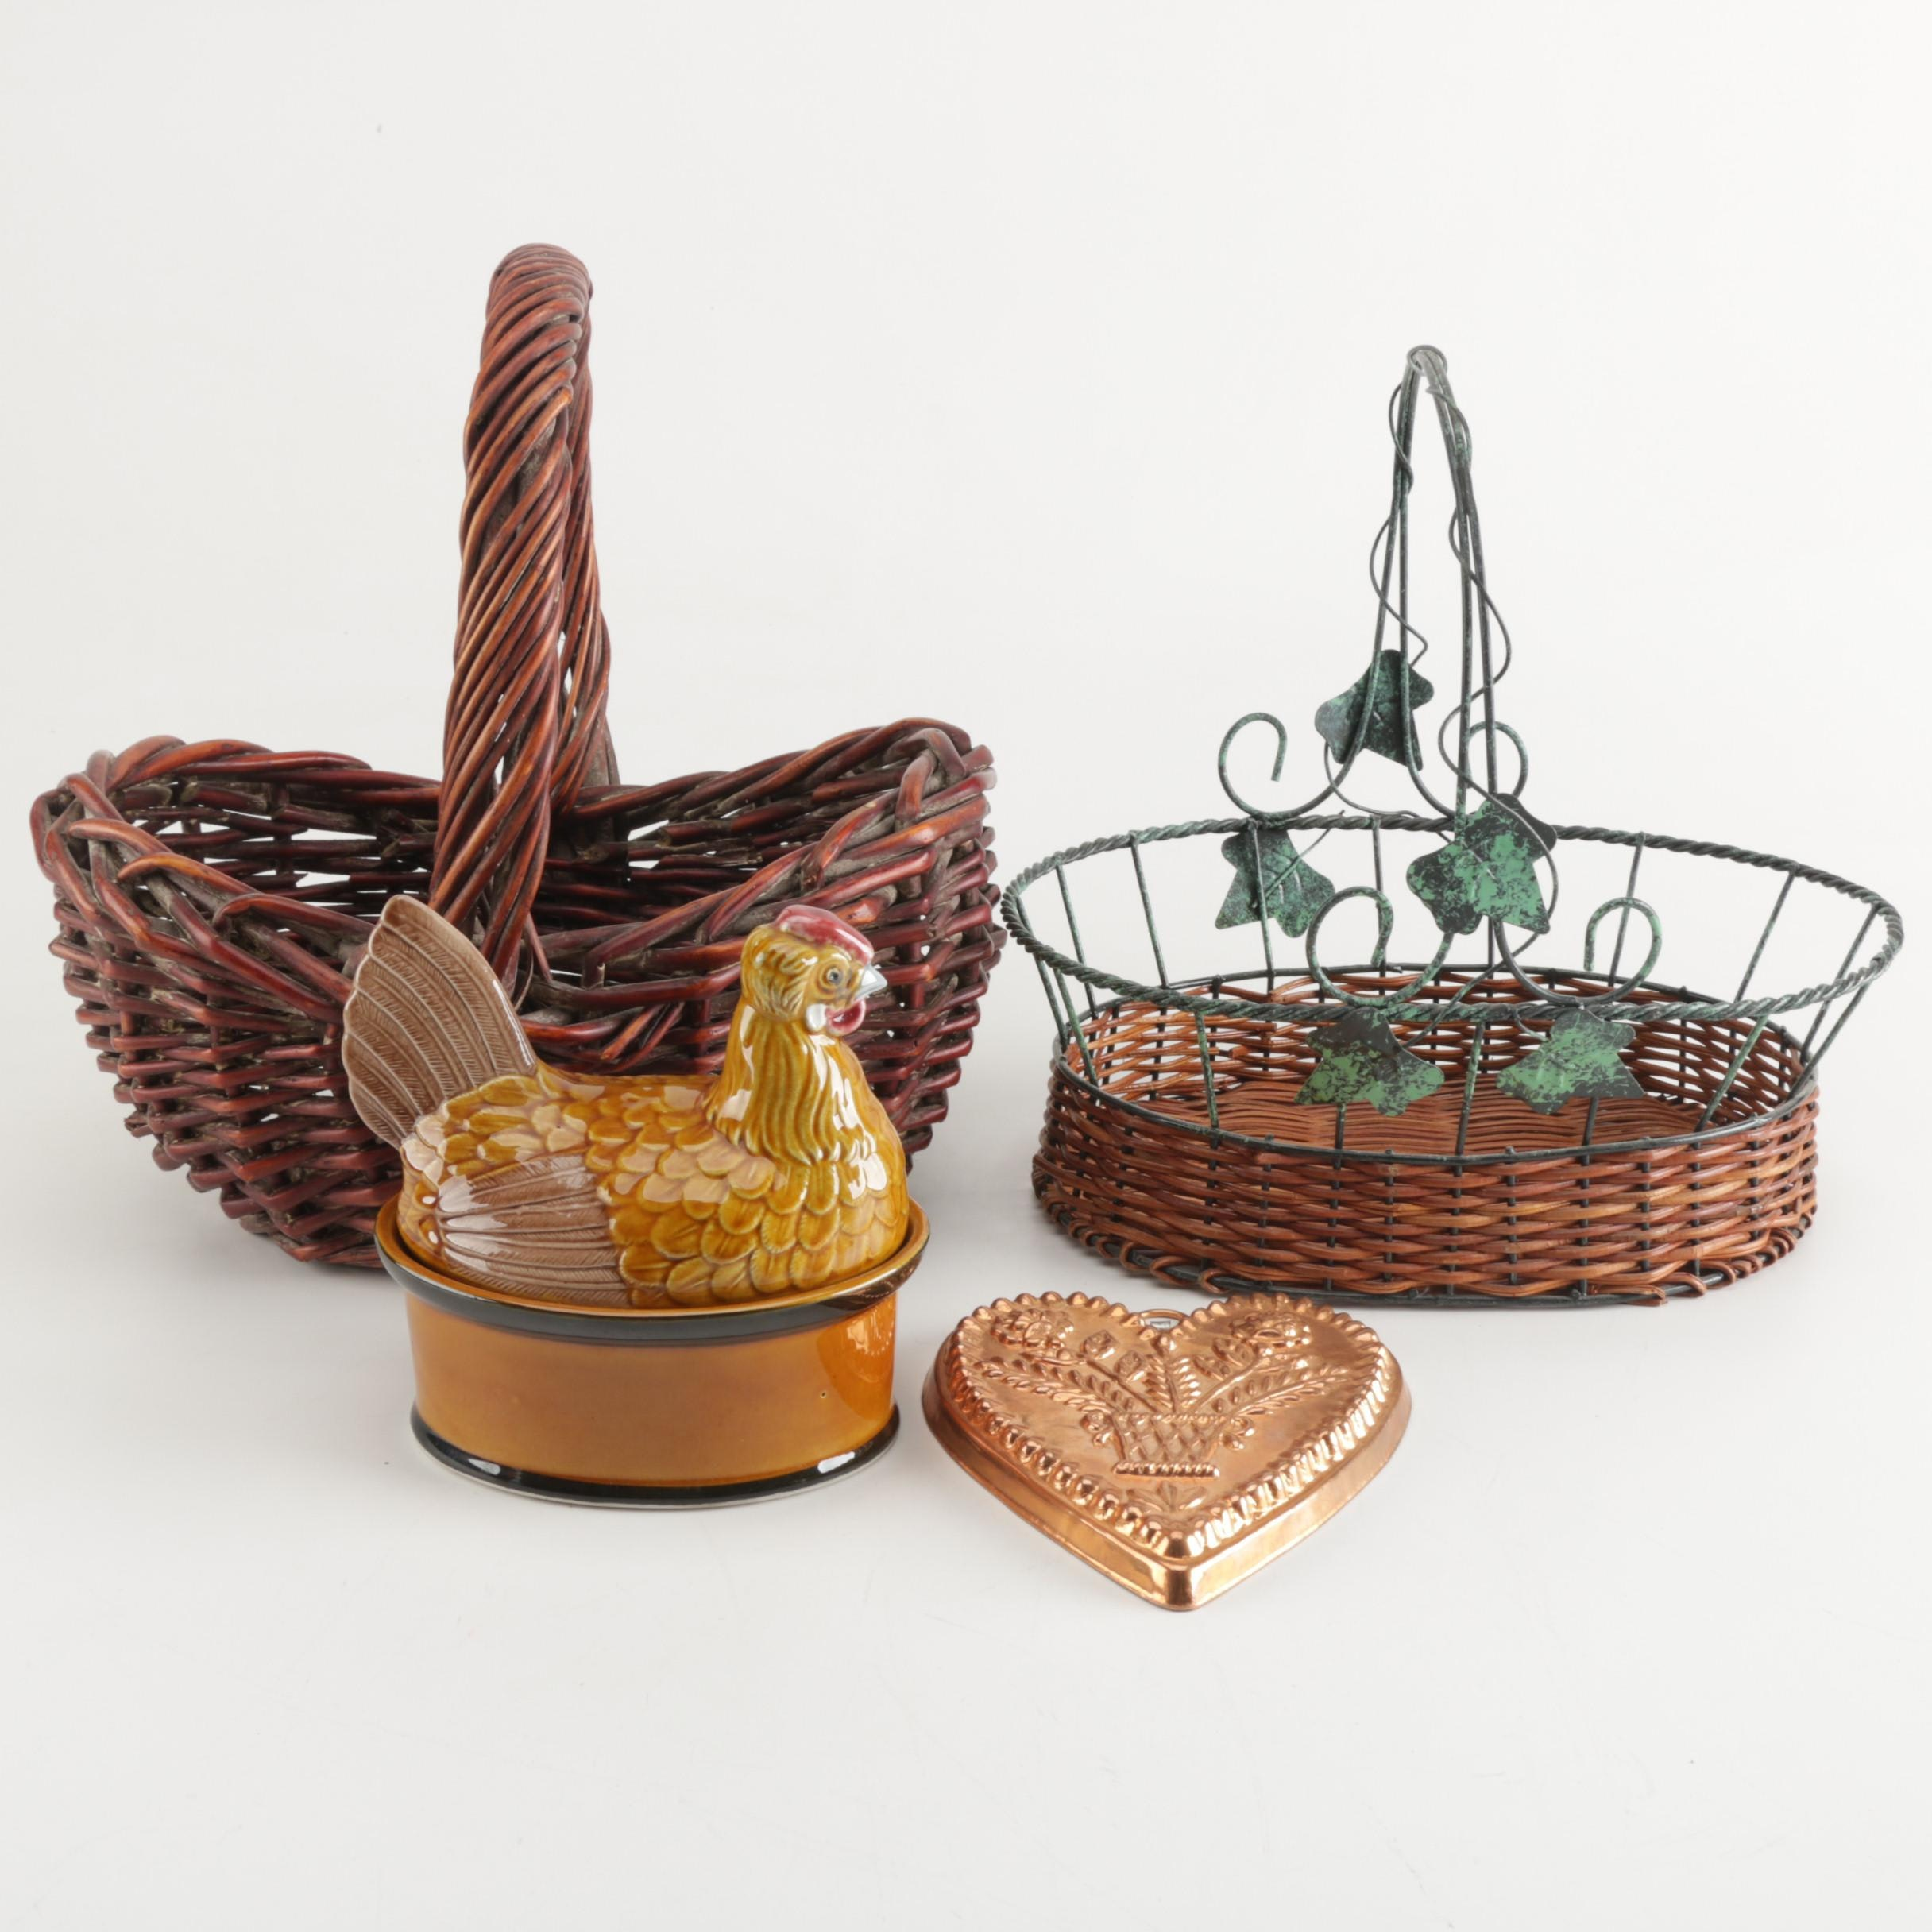 Portuguese Ceramic Hen on Nest Covered Dish with Baskets and Mold